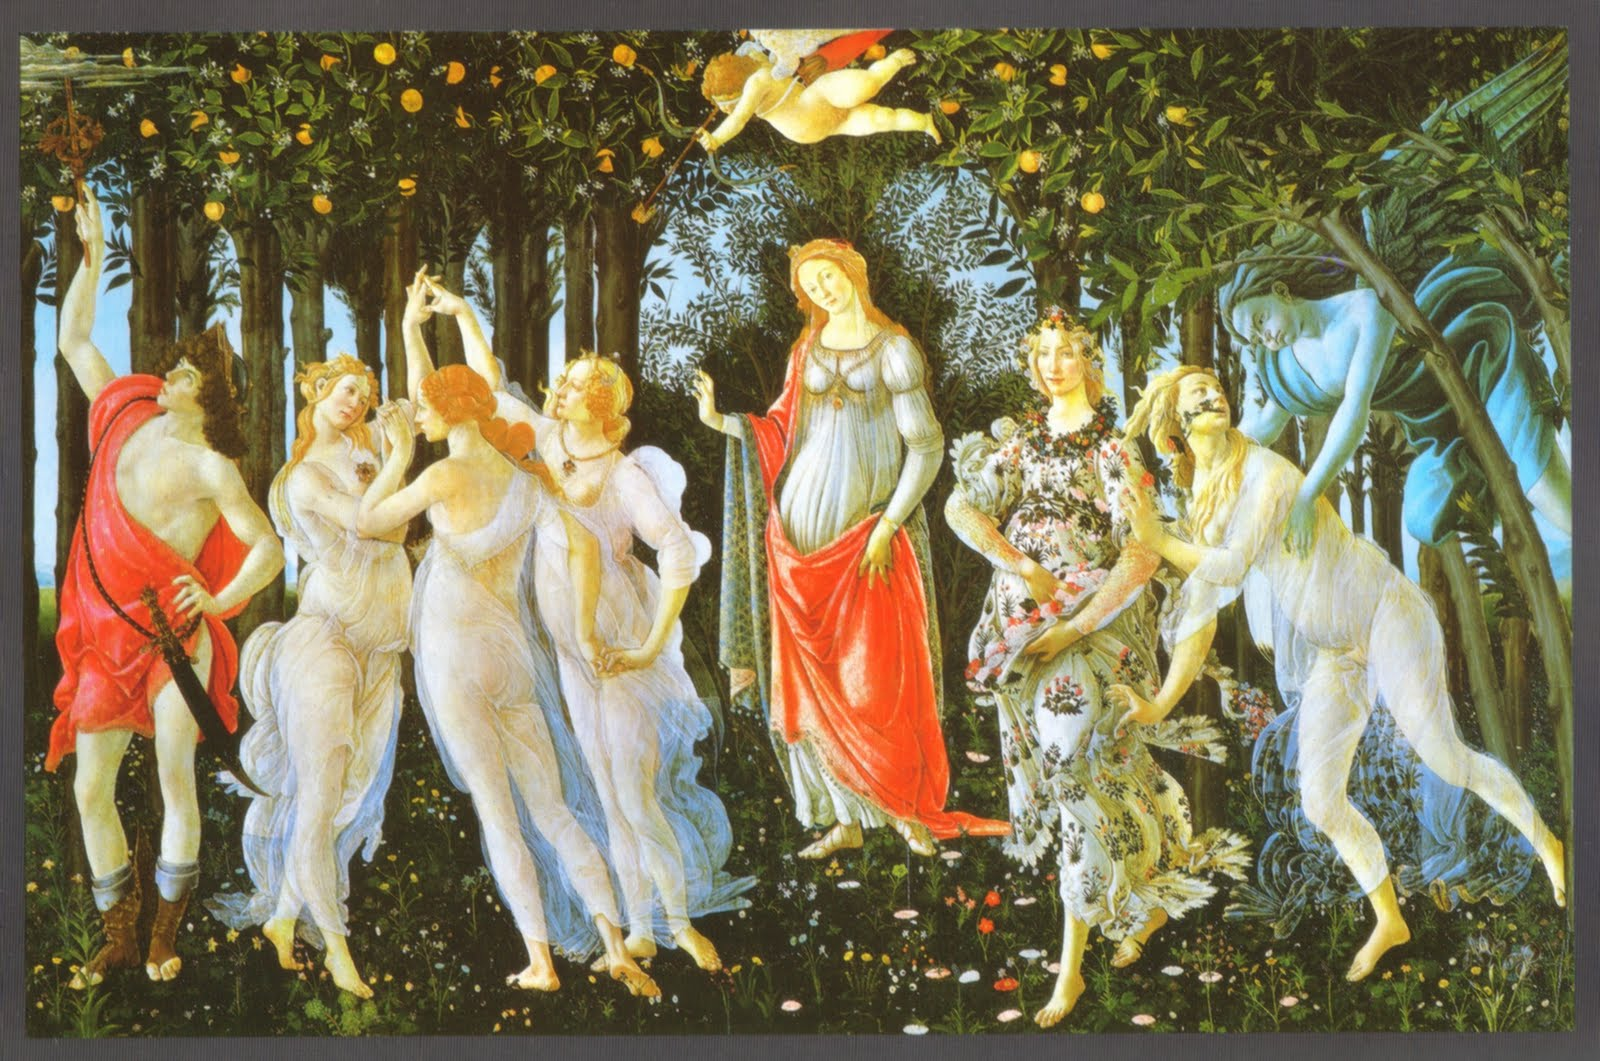 an analysis of the painting primavera by sandro botticelli Born to a poor tanner in the backstreets of florence, alessandro filipepi was brought up by his brother who  this much-analyzed painting shows venus, ancient goddess of beauty and fertility, celebrating the arrival of spring, la primavera.